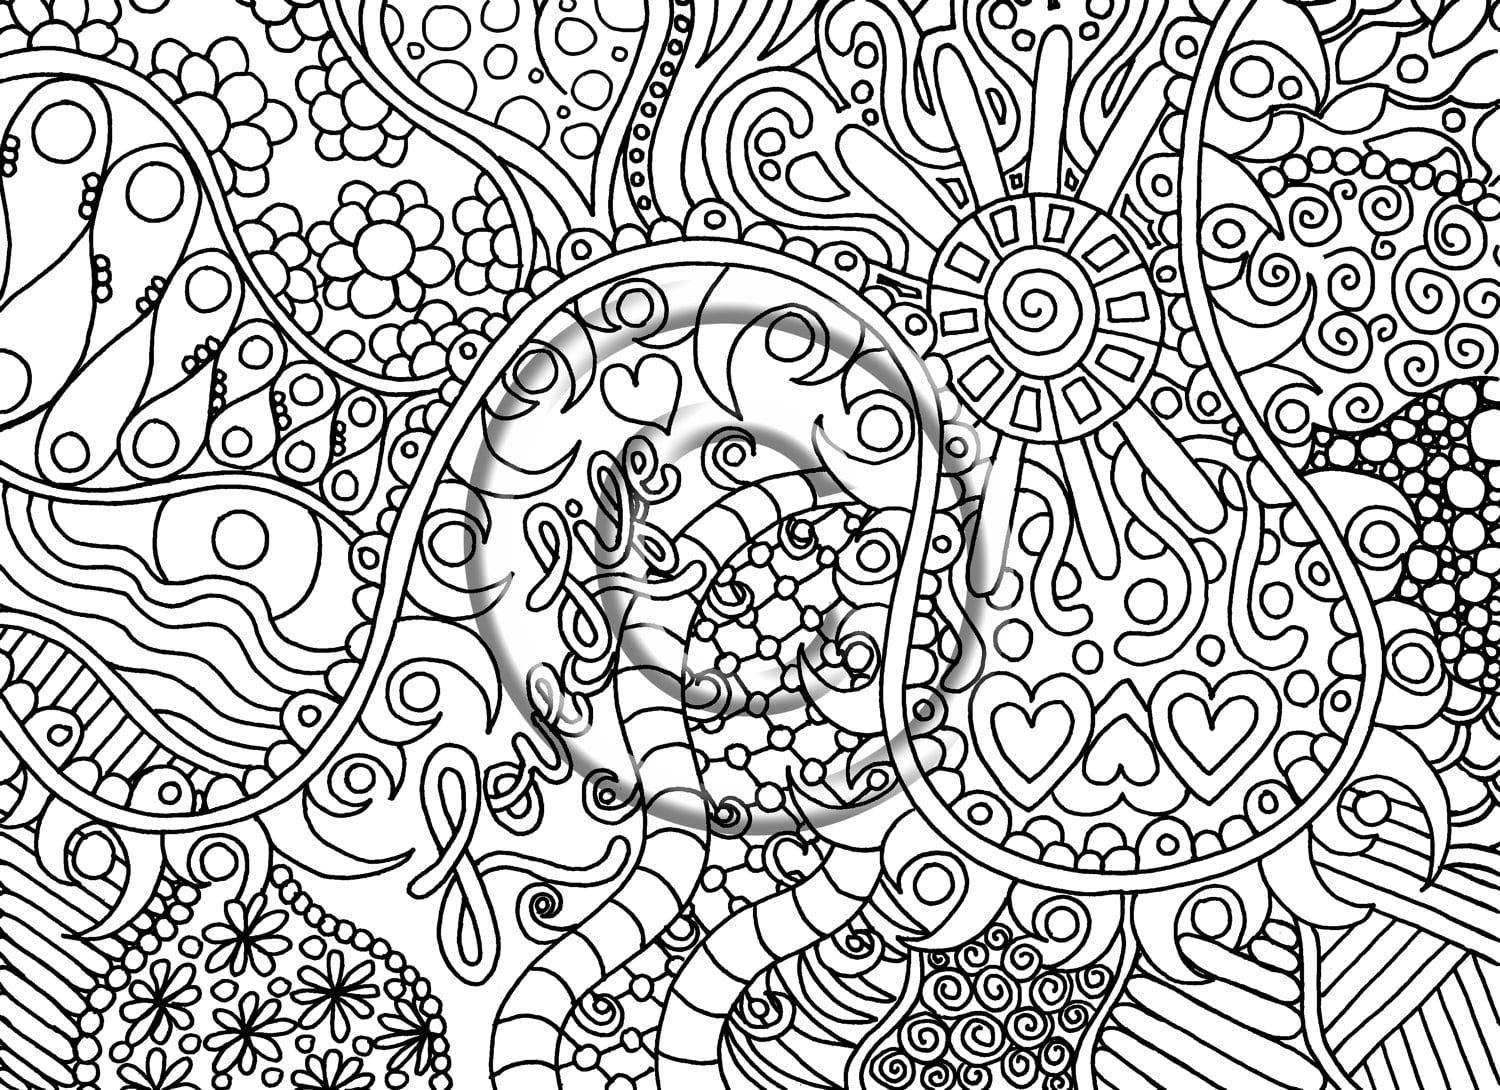 Psychedelic Coloring Pages Printable Coloring Image Free Coloring